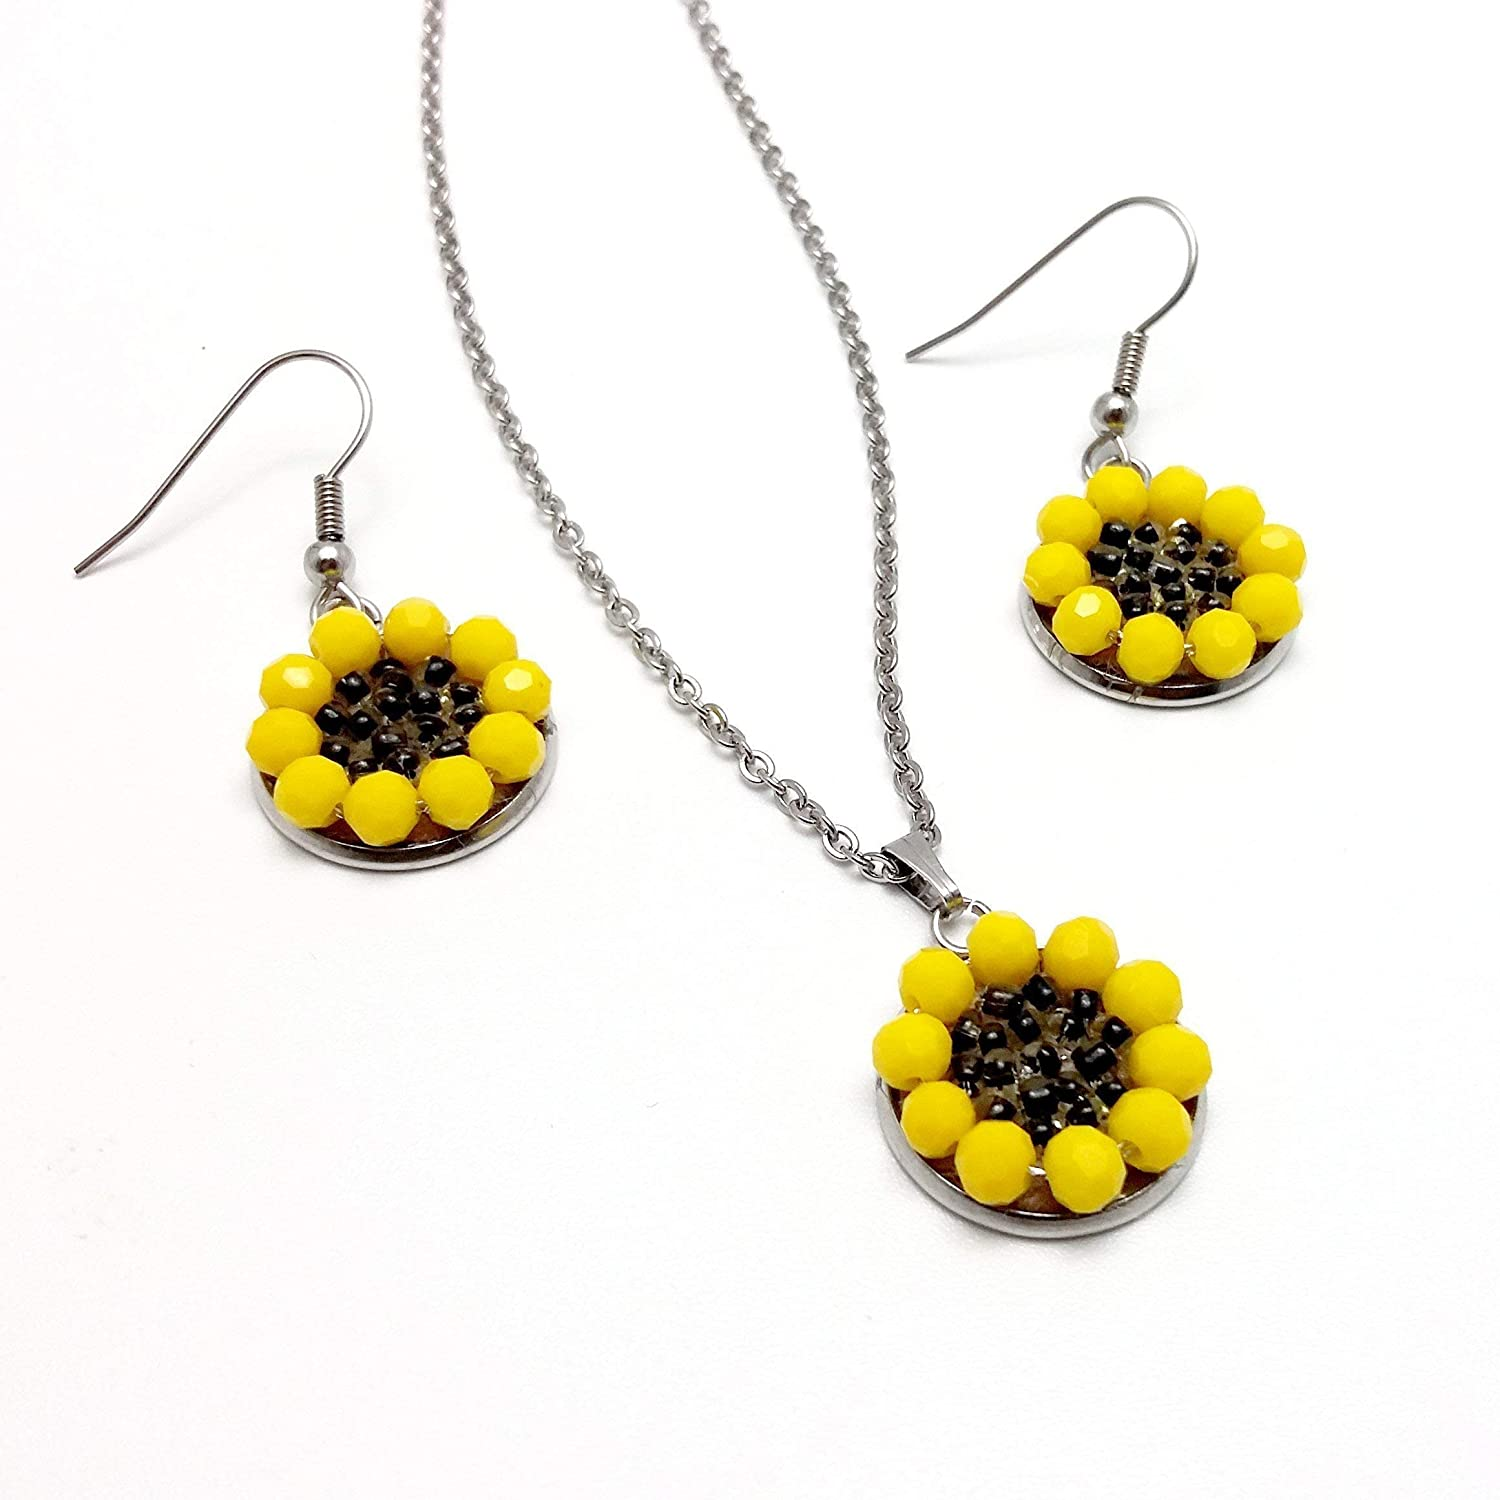 Stand Out Designs Jewelry : Amazon sunflower jewelry sets stainless steel jewelry sets